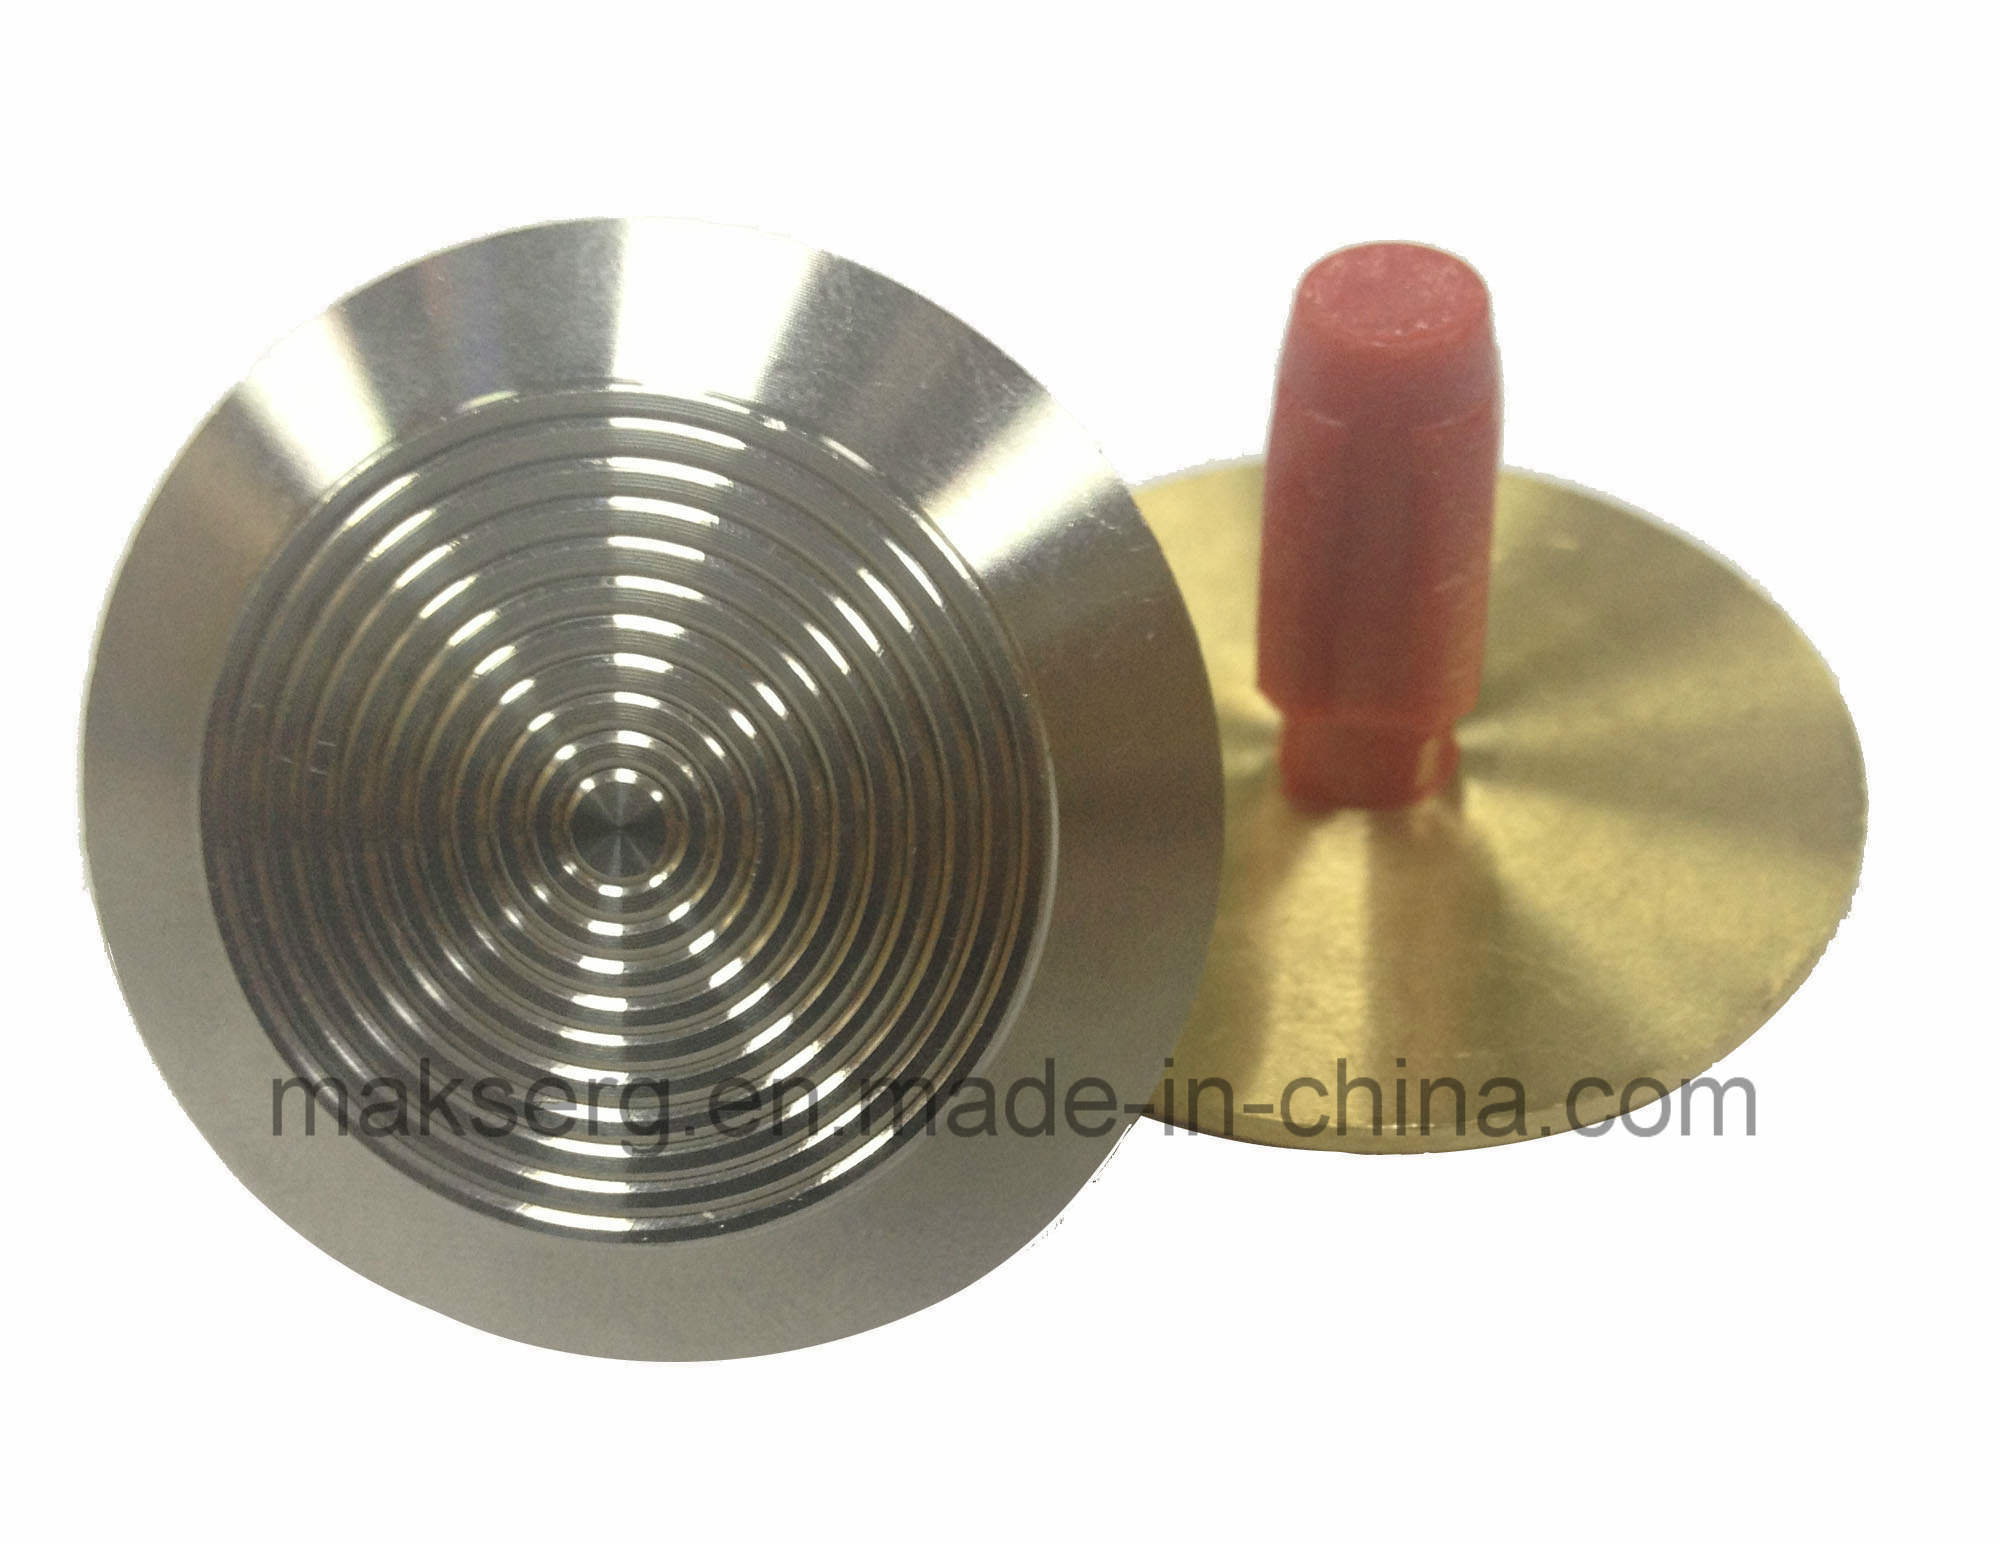 Aluminium Alloy Stainless Brass Road Stud Tactile Indicator CNC OEM